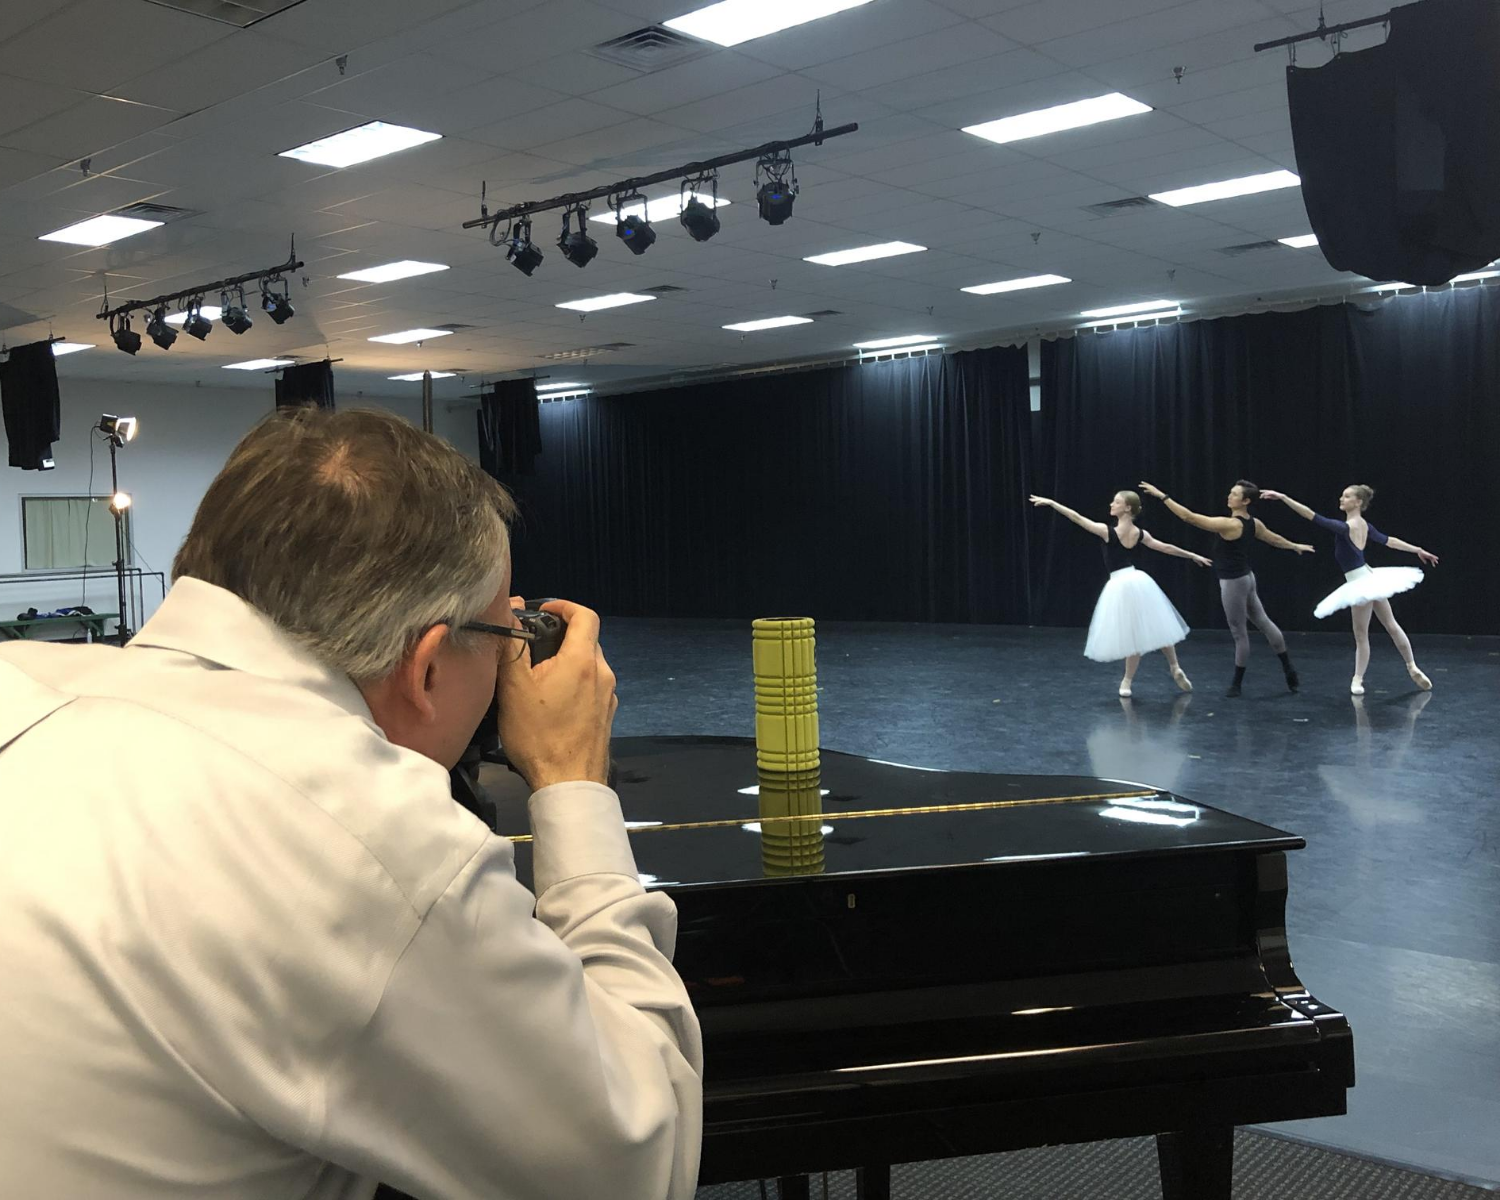 Photographer shooting photos of 3 dancers in arabesque, 2 female and 1 male.